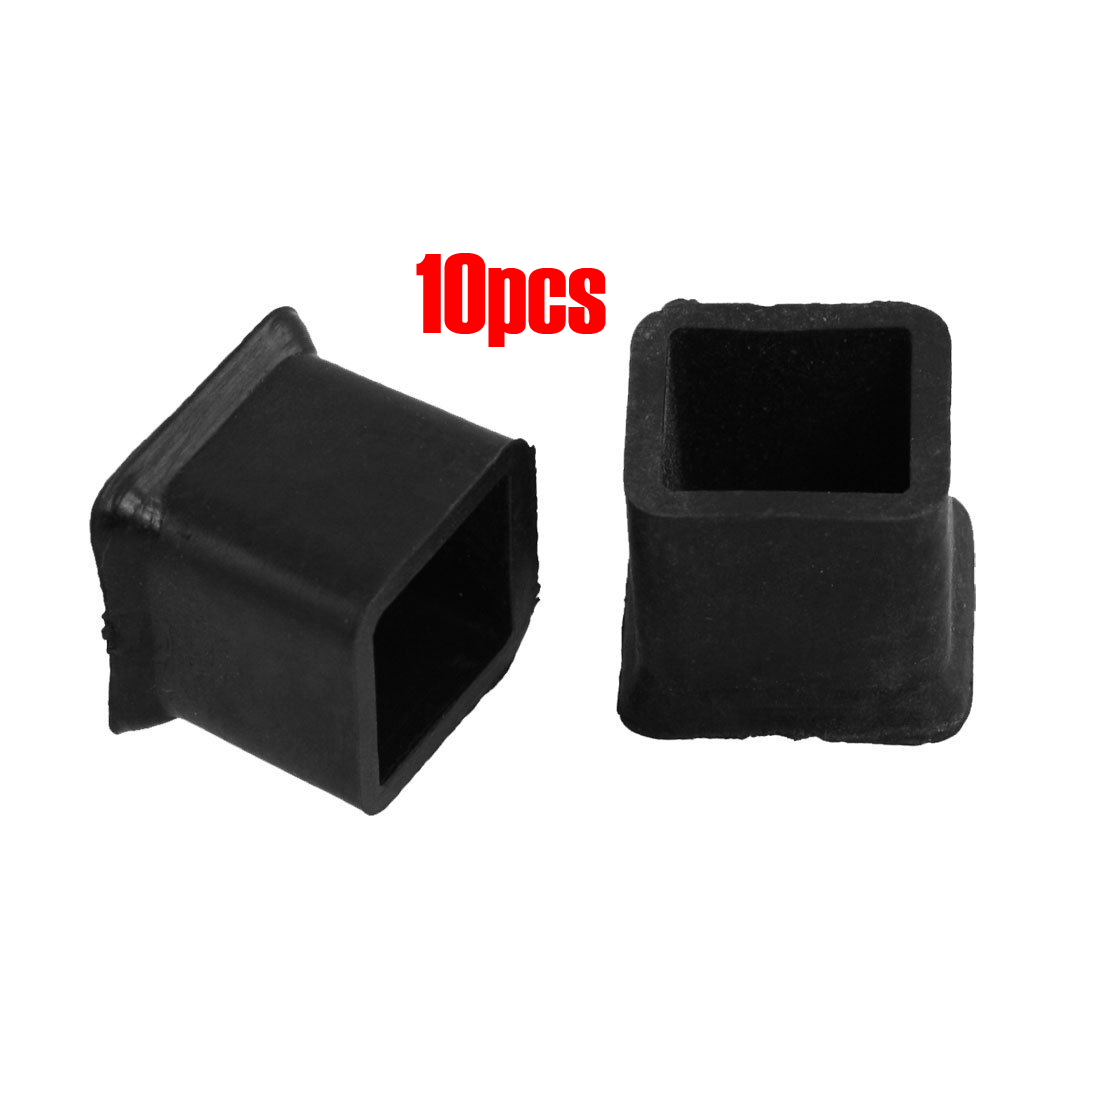 HOT GCZW-10 Pcs Furniture Chair Table Leg Rubber Foot Covers Protectors 20mm x 20mmHOT GCZW-10 Pcs Furniture Chair Table Leg Rubber Foot Covers Protectors 20mm x 20mm